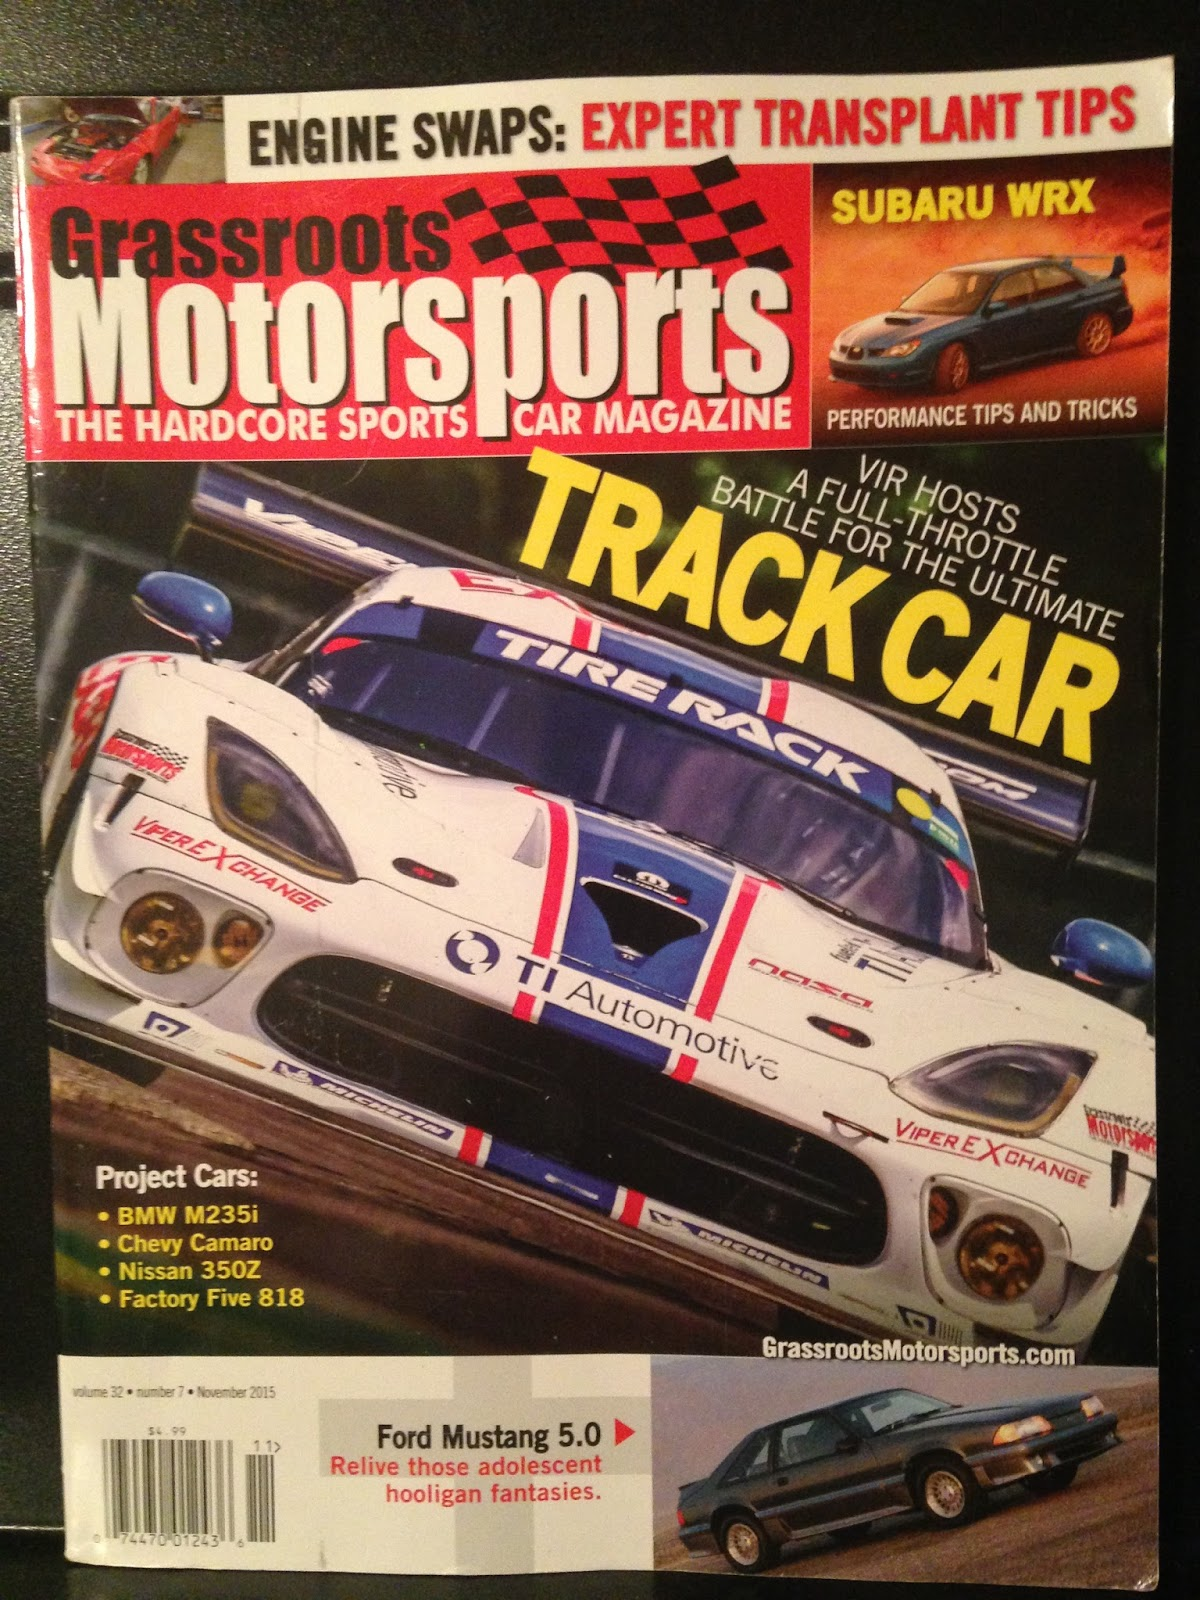 The next factory five kit car includes subaru page 5 grassroots - Grassroots Motorsports Probably My Favorite Magazine Because It Focuses Ford Fans Should Like That Word On Many Types Of Motor Racing In The Us